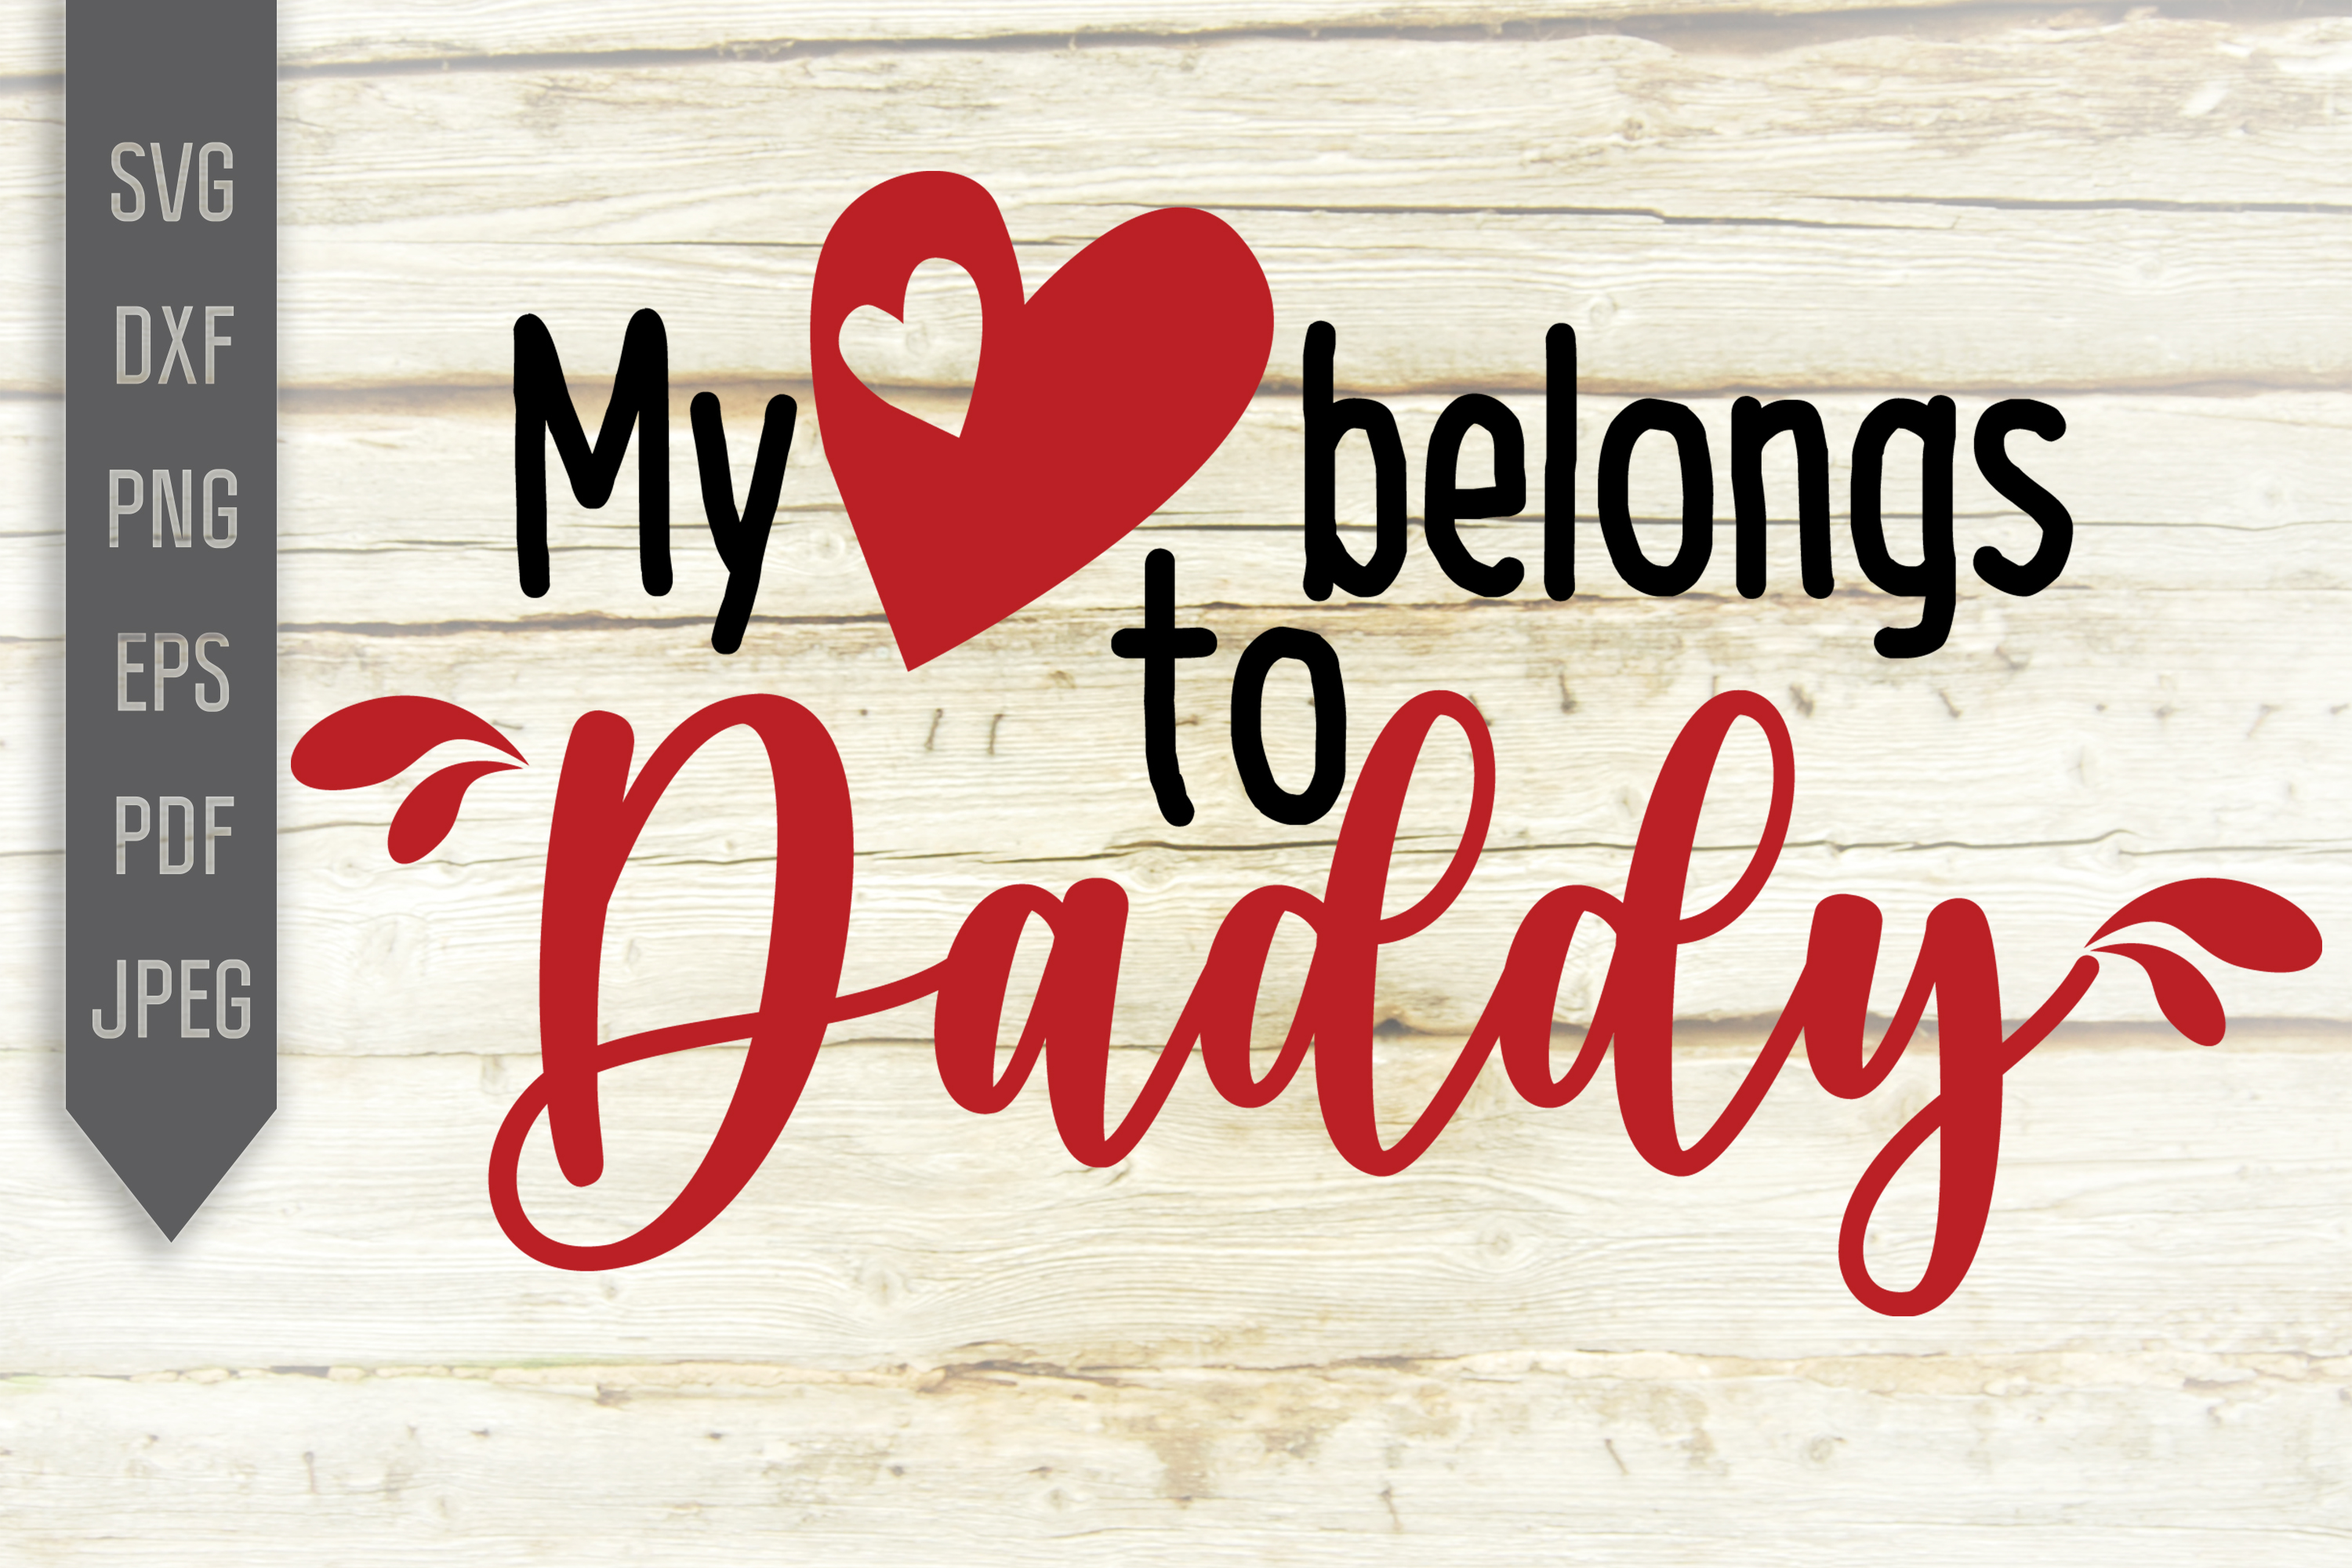 Download Free My Heart Belongs To My Daddy Svg Baby Graphic By Svglaboratory for Cricut Explore, Silhouette and other cutting machines.